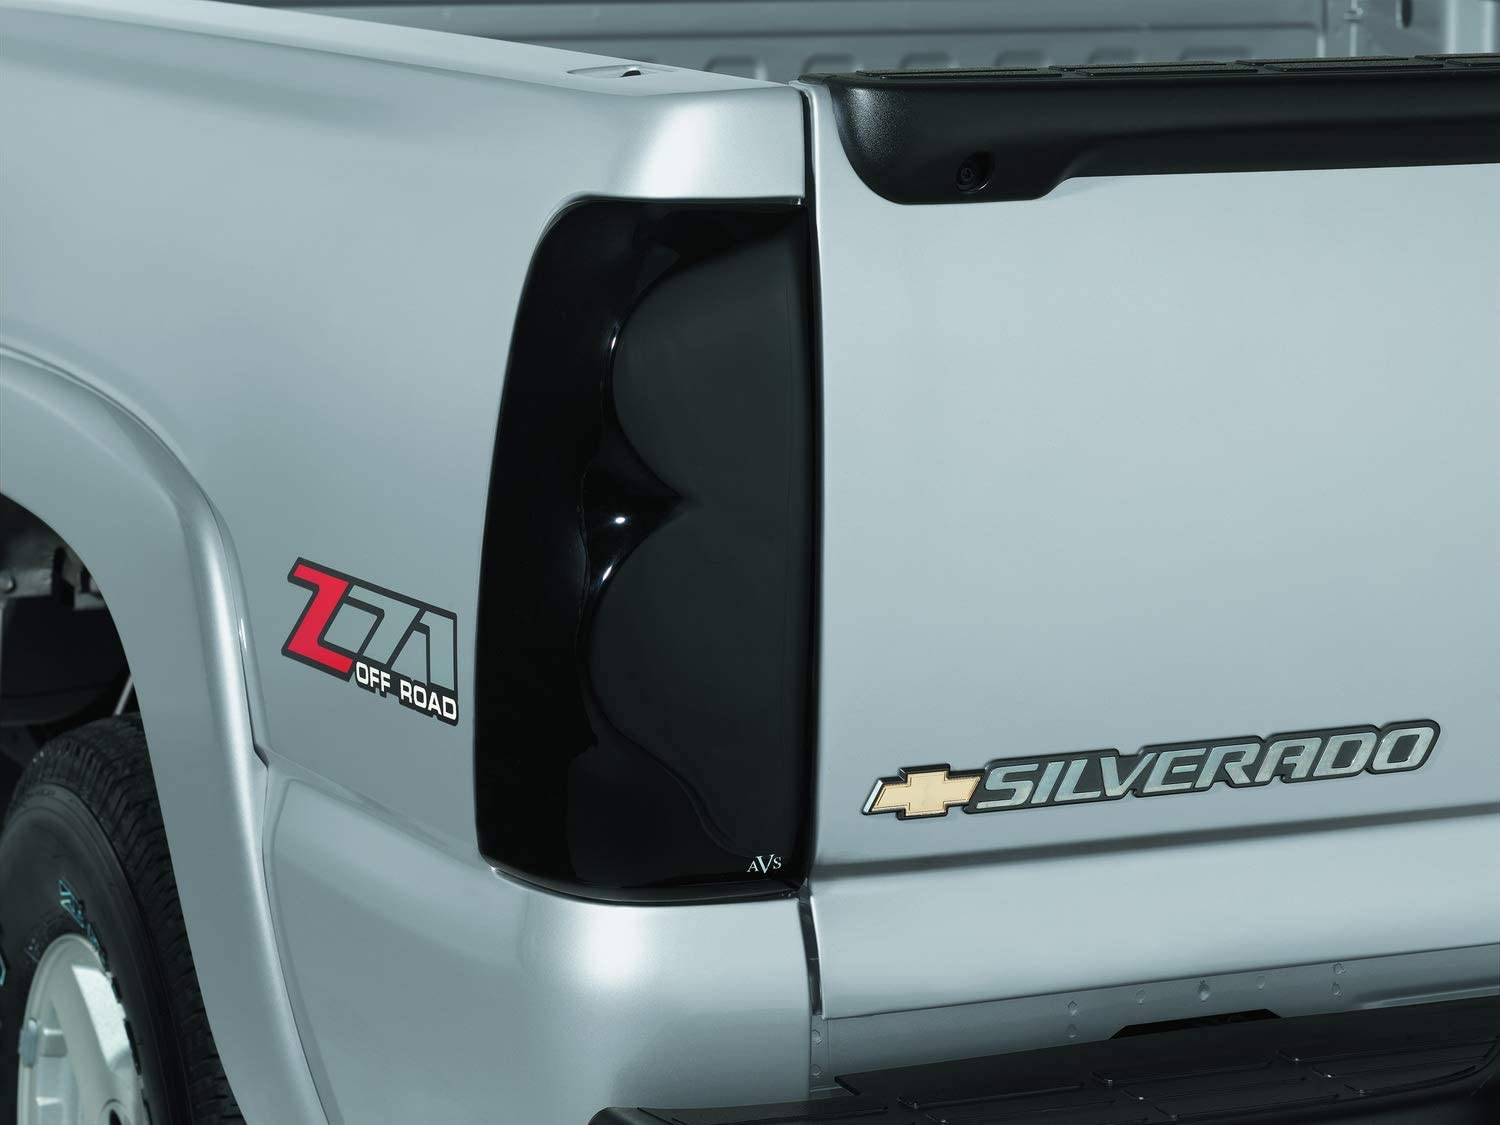 Auto Ventshade 33964 Tailshades Blackout Tailight Covers for 2015-2017 Ford F-150